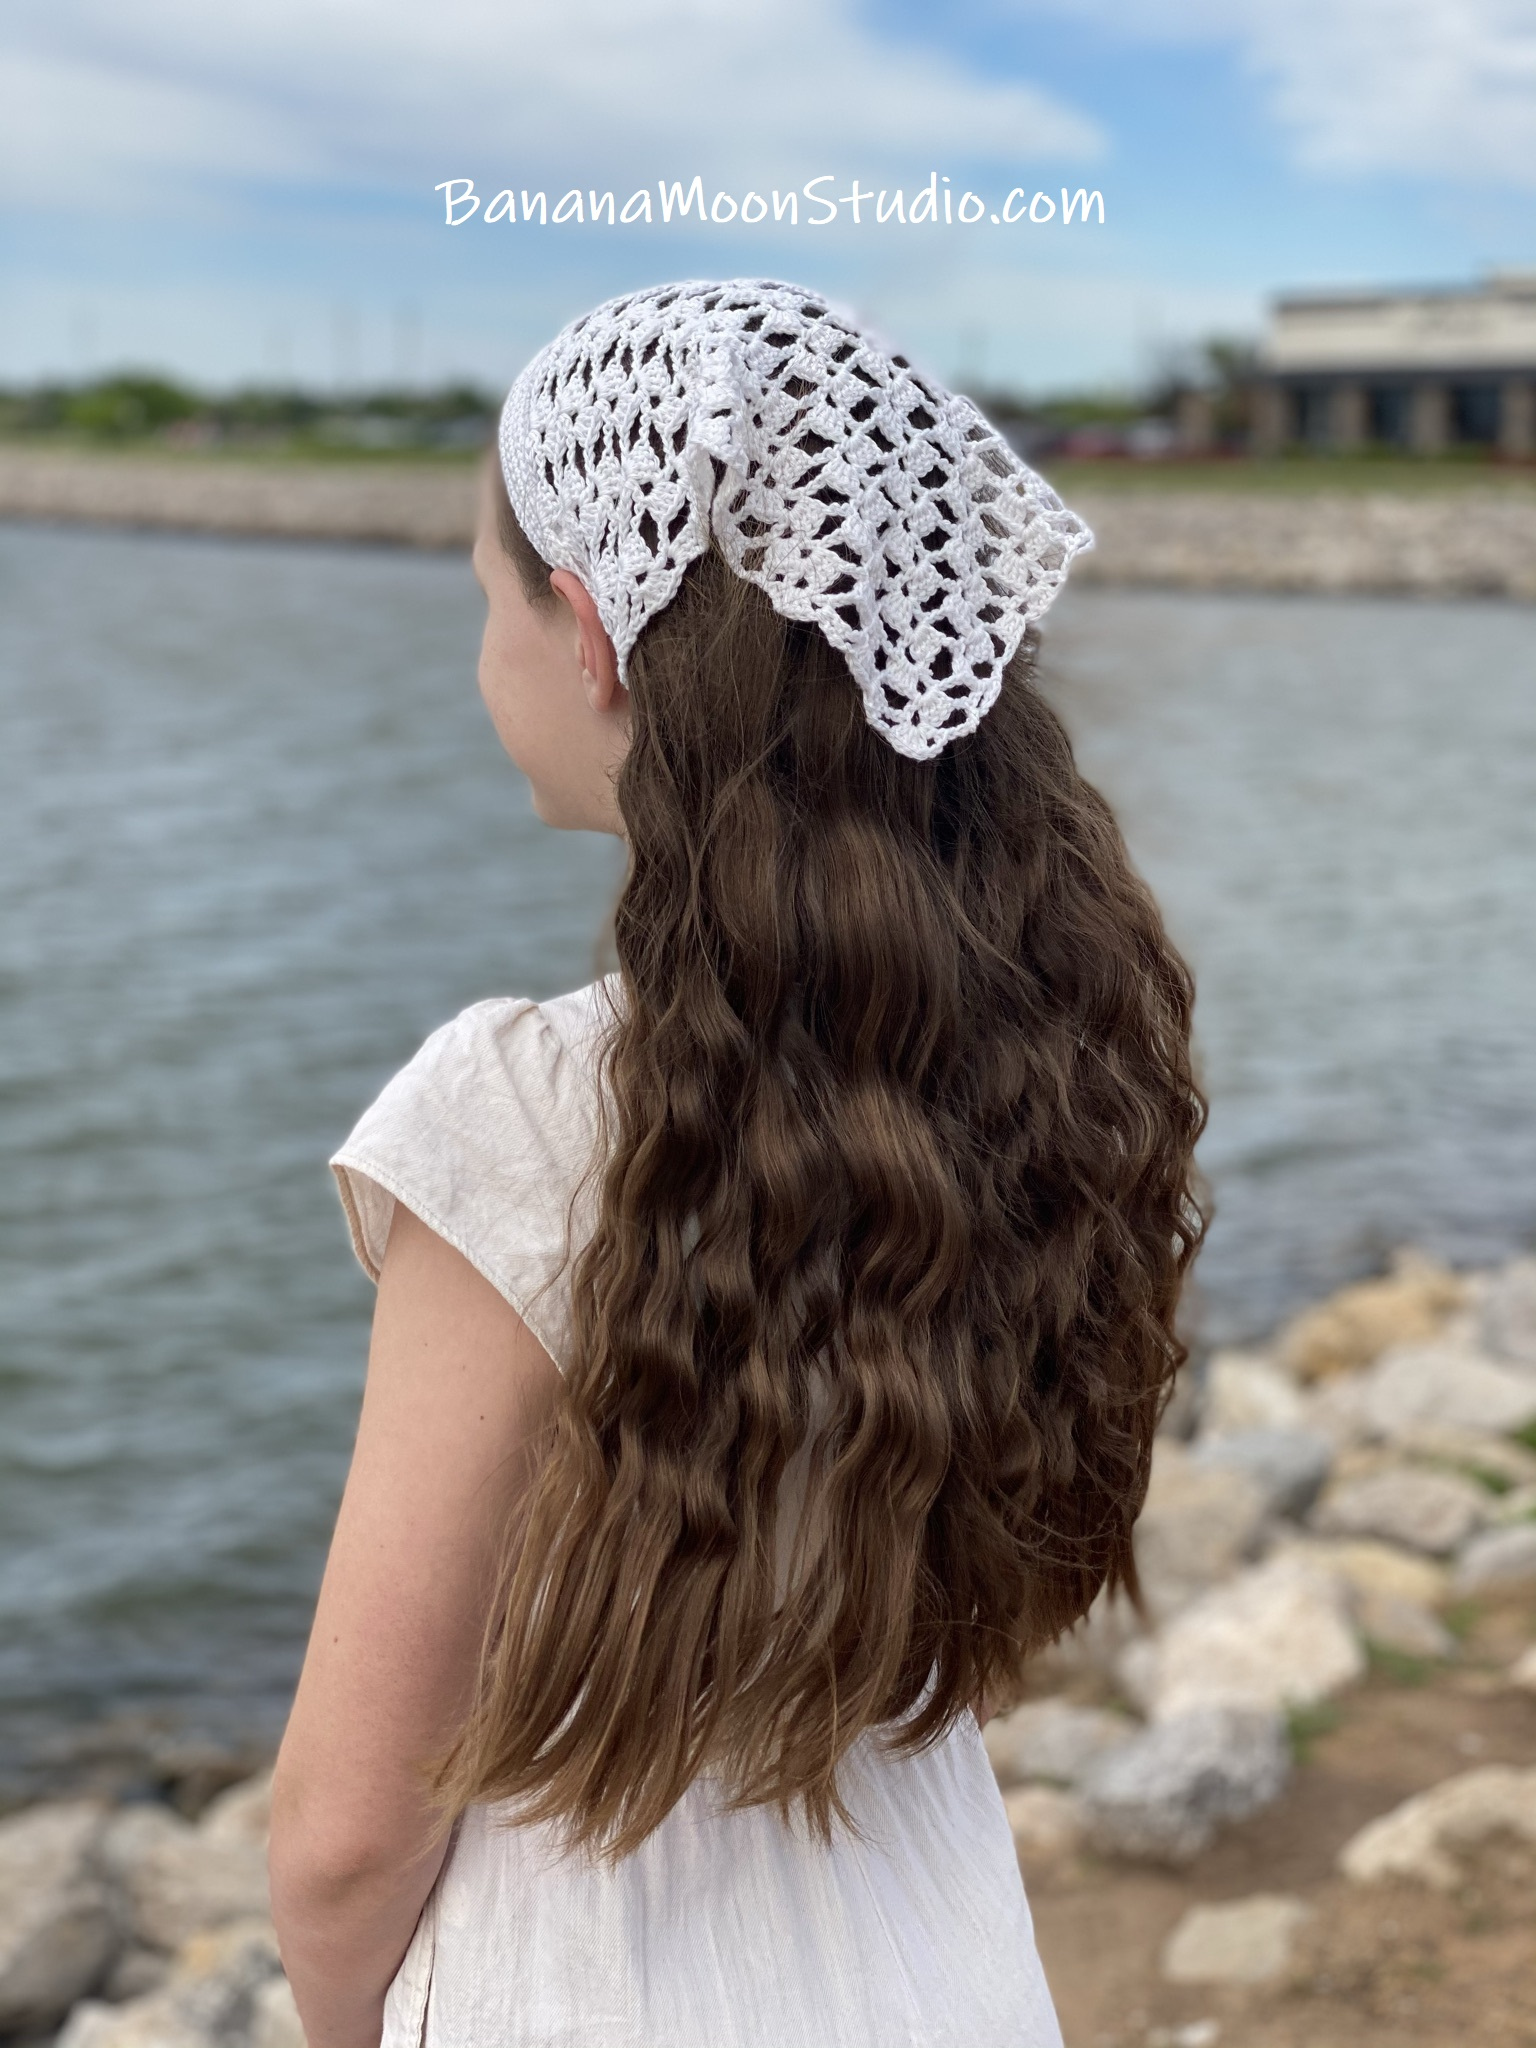 Girl standing near the water wearing a white lace hair kerchief and white jumpsuit. Marietta Kerchief free lacy crochet kerchief pattern from Banana Moon Studio.